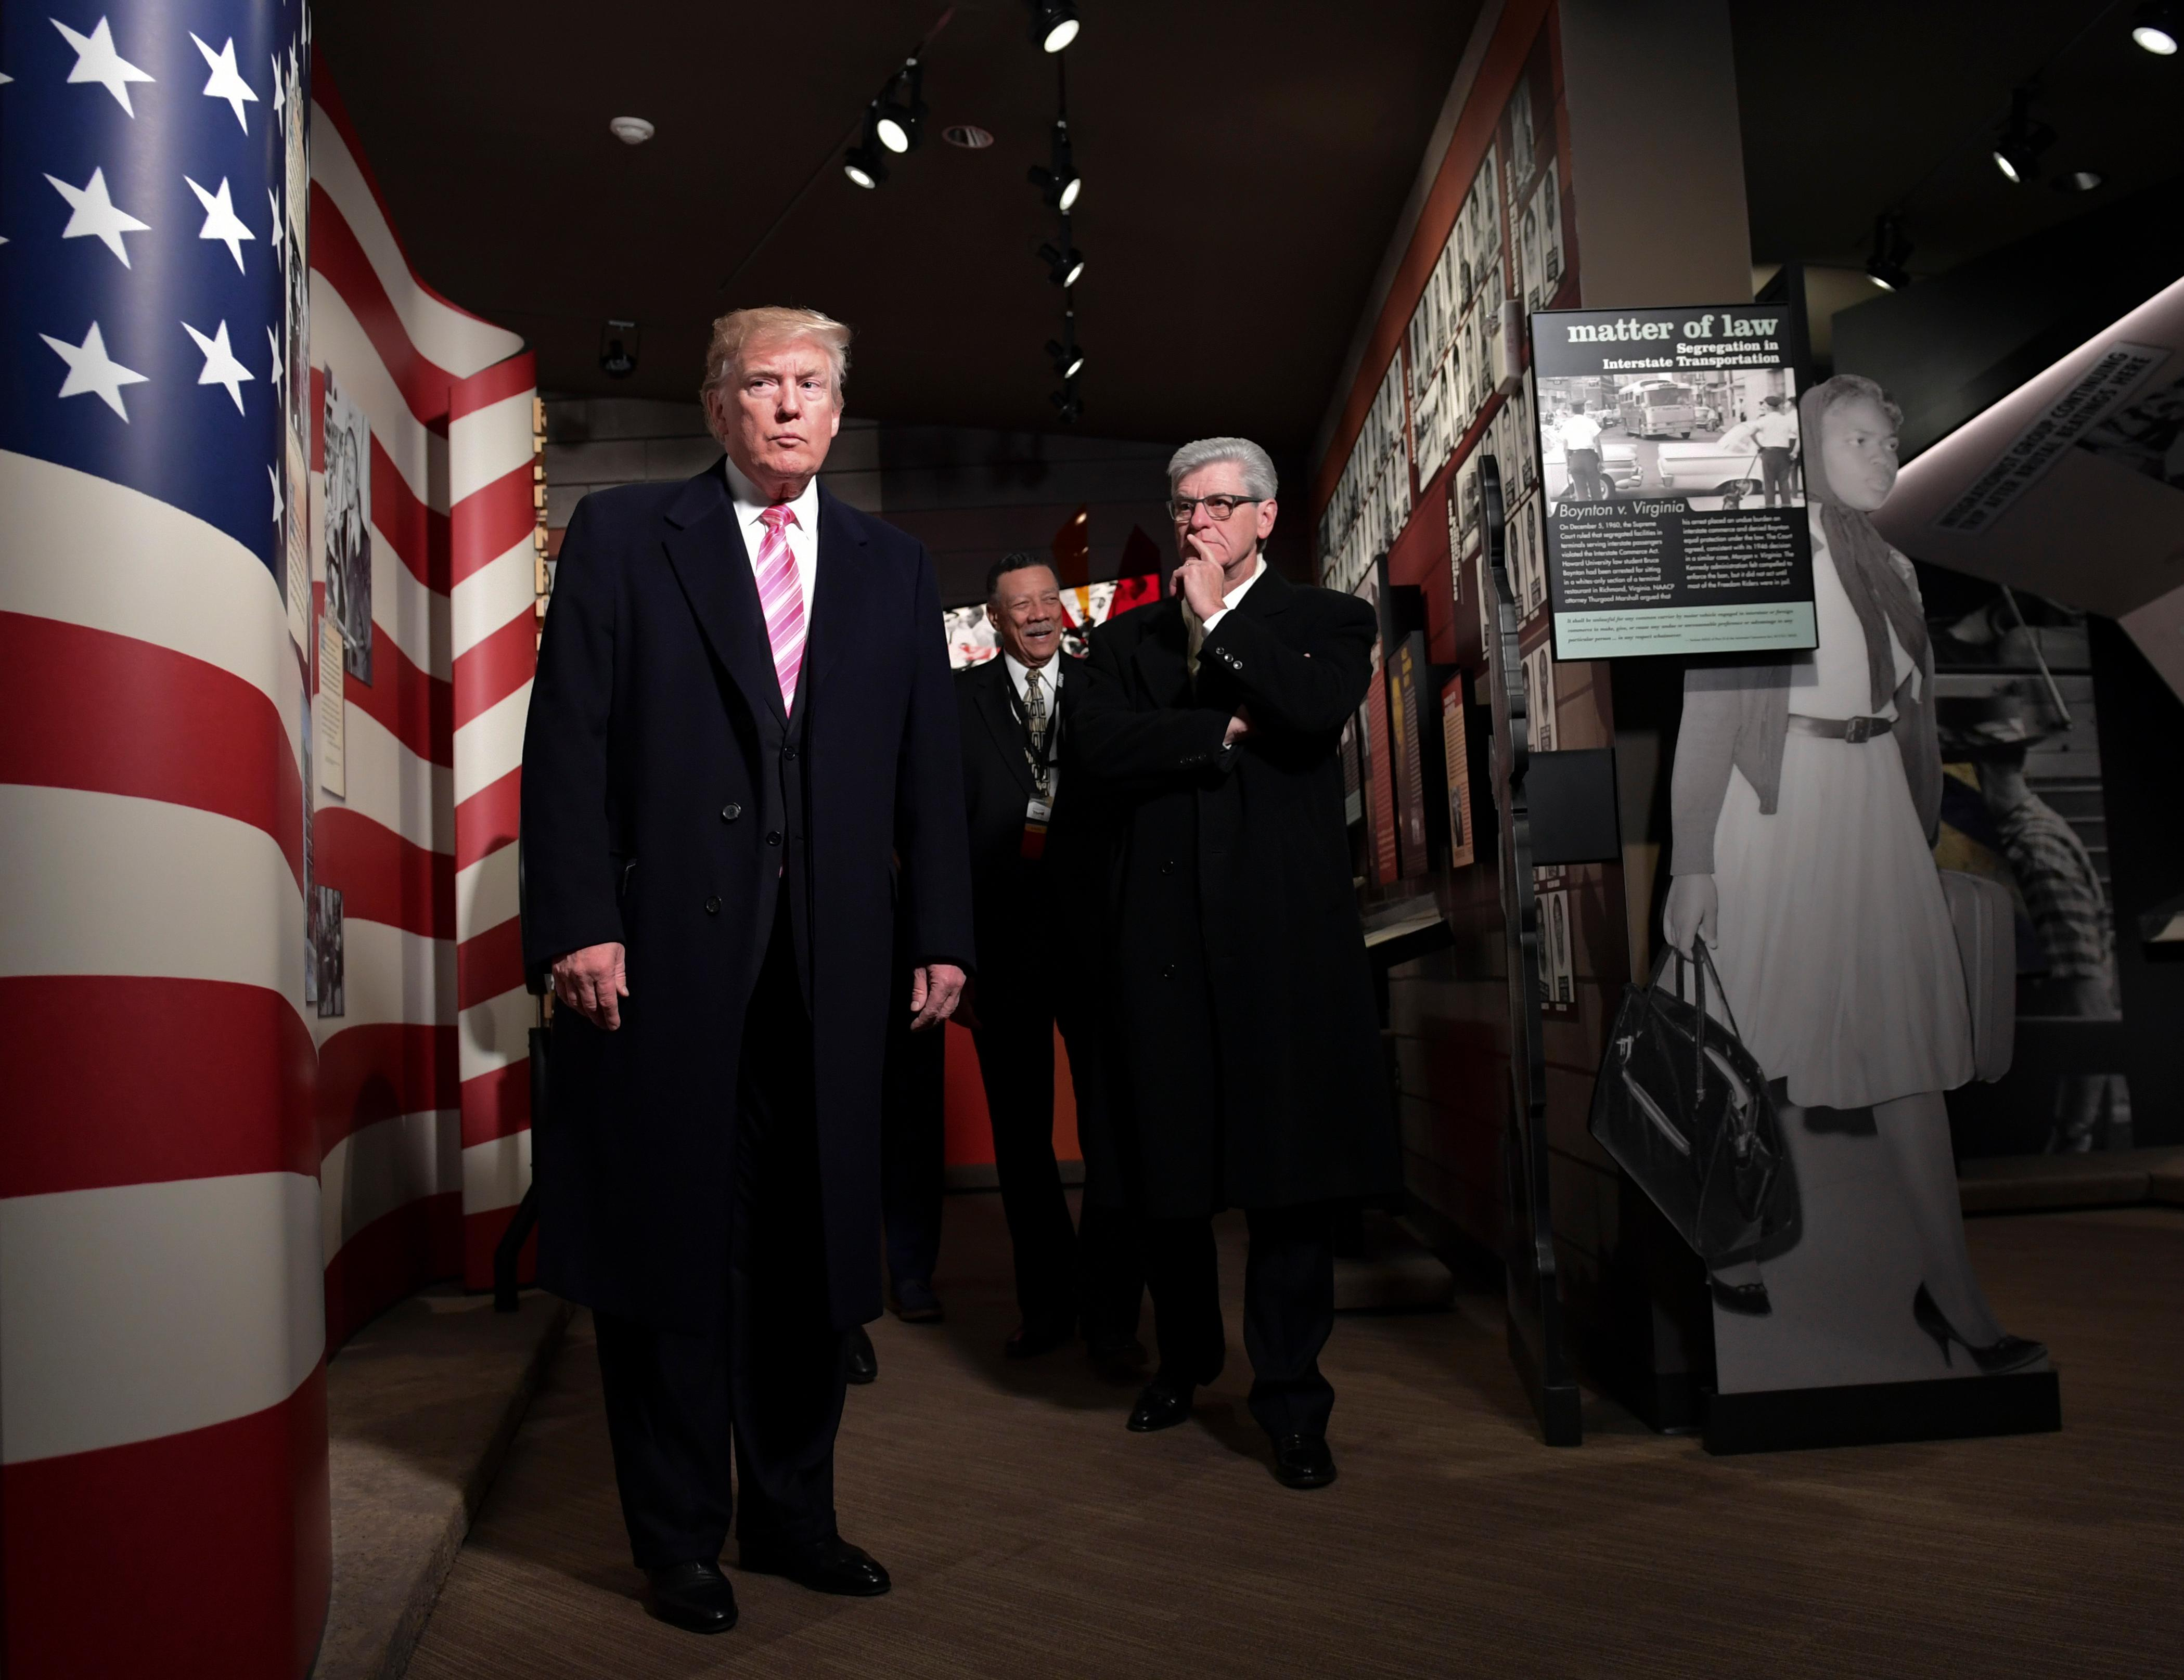 President Donald Trump, left, gets a tour of the newly-opened Mississippi Civil Rights Museum in Jackson, Miss., Saturday, Dec. 9, 2017. Mississippi Gov. Phil Bryant, watches at right. (AP Photo/Susan Walsh)